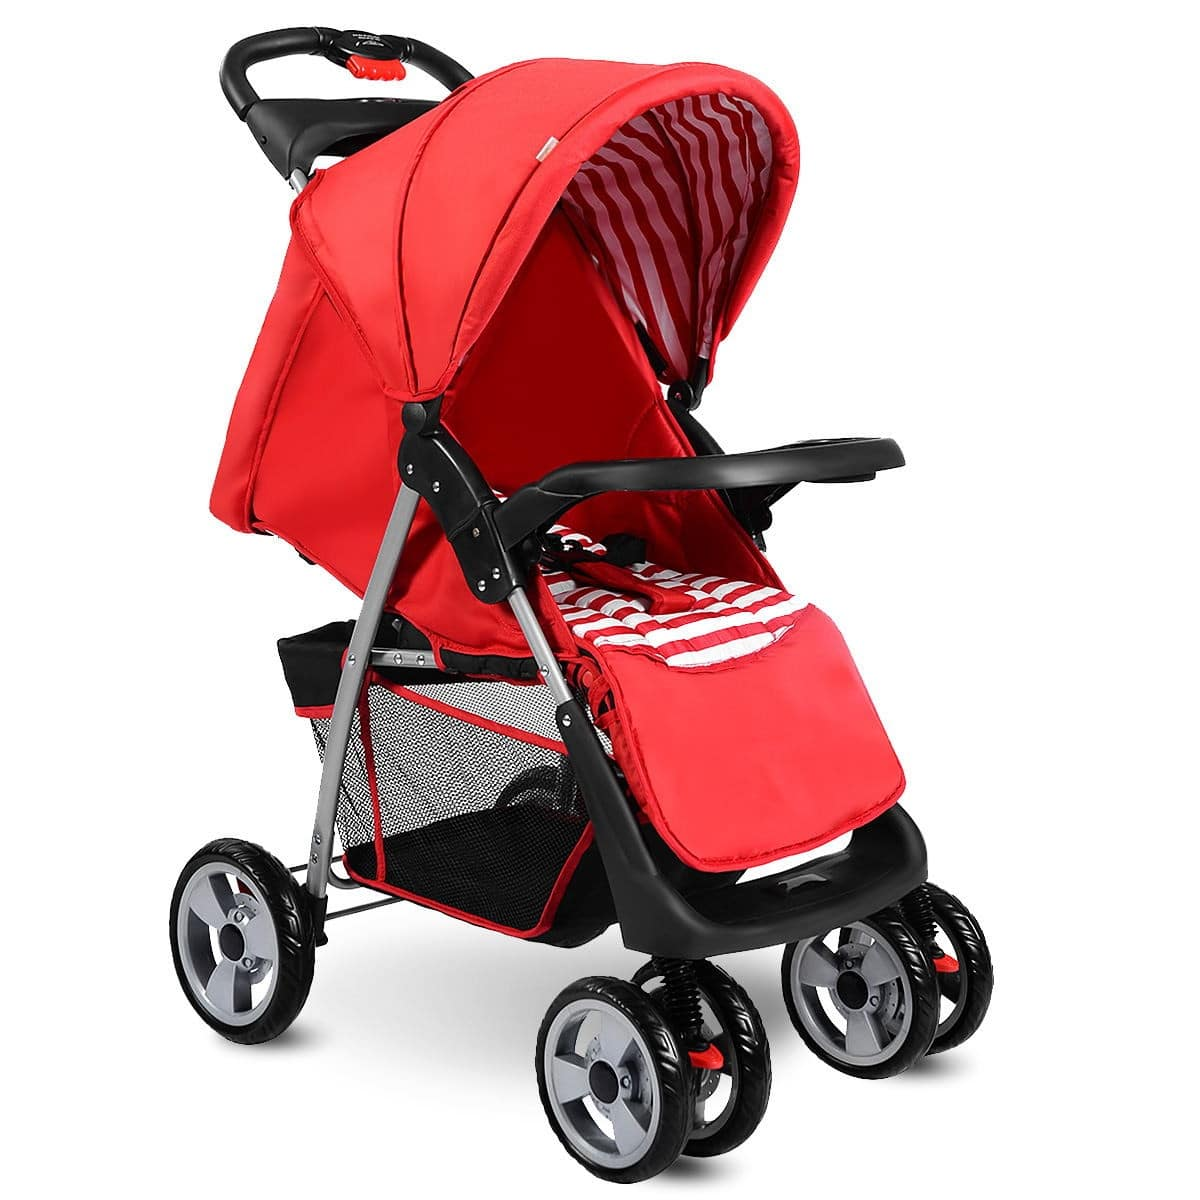 3 Color Foldable Baby Kids Travel Stroller - $52.95 + Free Shipping